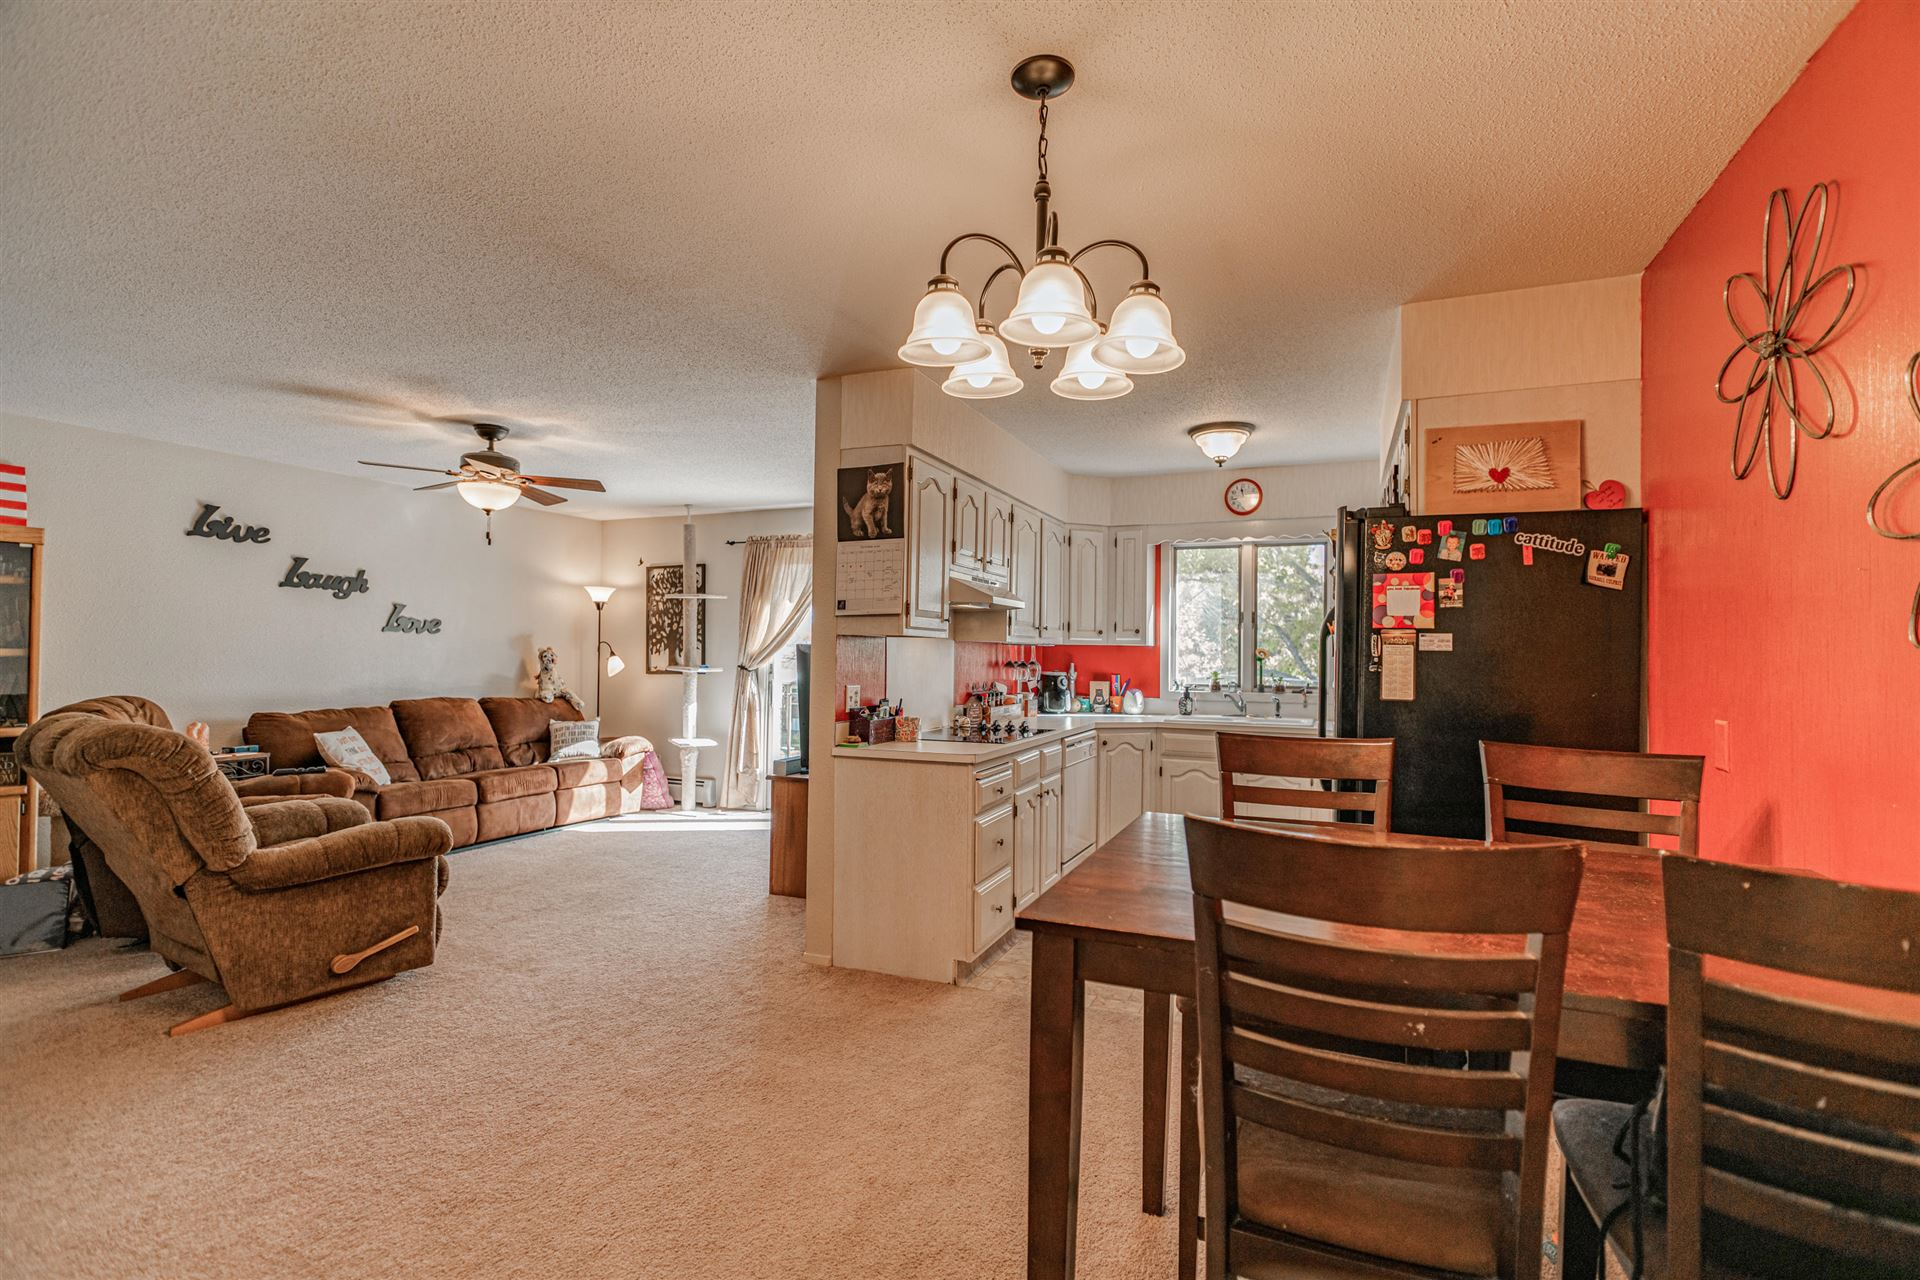 2105 Kavaney Drive N #1, Bismarck, ND 58501 - #: 401948